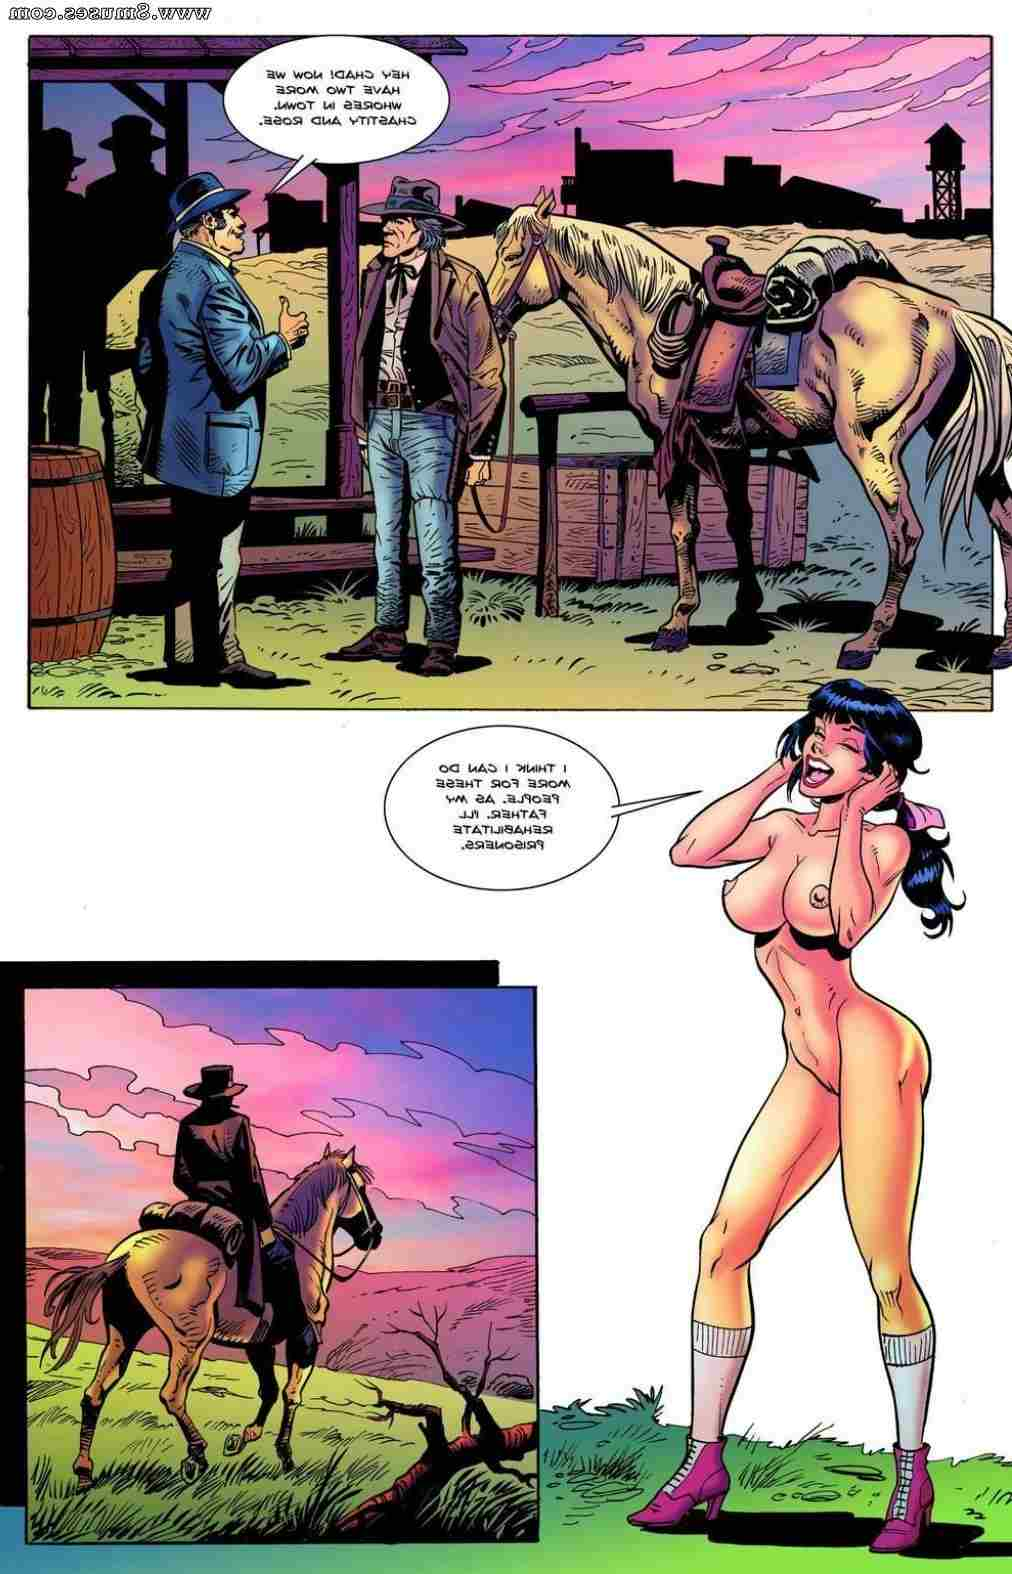 Bimbo-Story-Club-Comics/Spell-Sioux Spell_Sioux__8muses_-_Sex_and_Porn_Comics_3.jpg